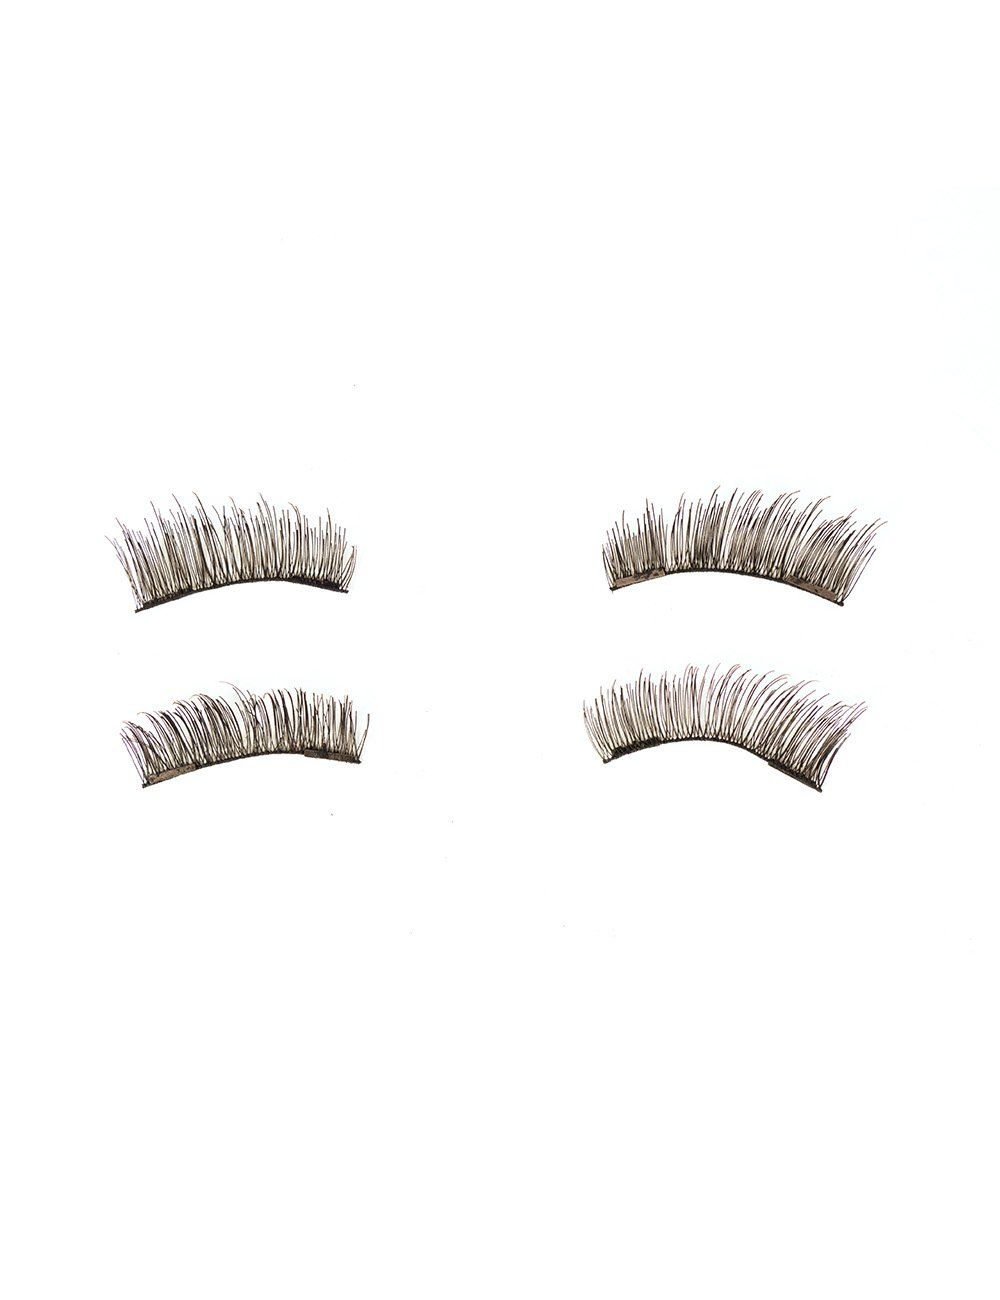 ada186c3e1f IRRESISTIBLE ME MAGNETIC EYELASHES DOUBLE 2 MAGNETS Premium Quality Fake  Lashes Extension Full Coverage Ultra Thin